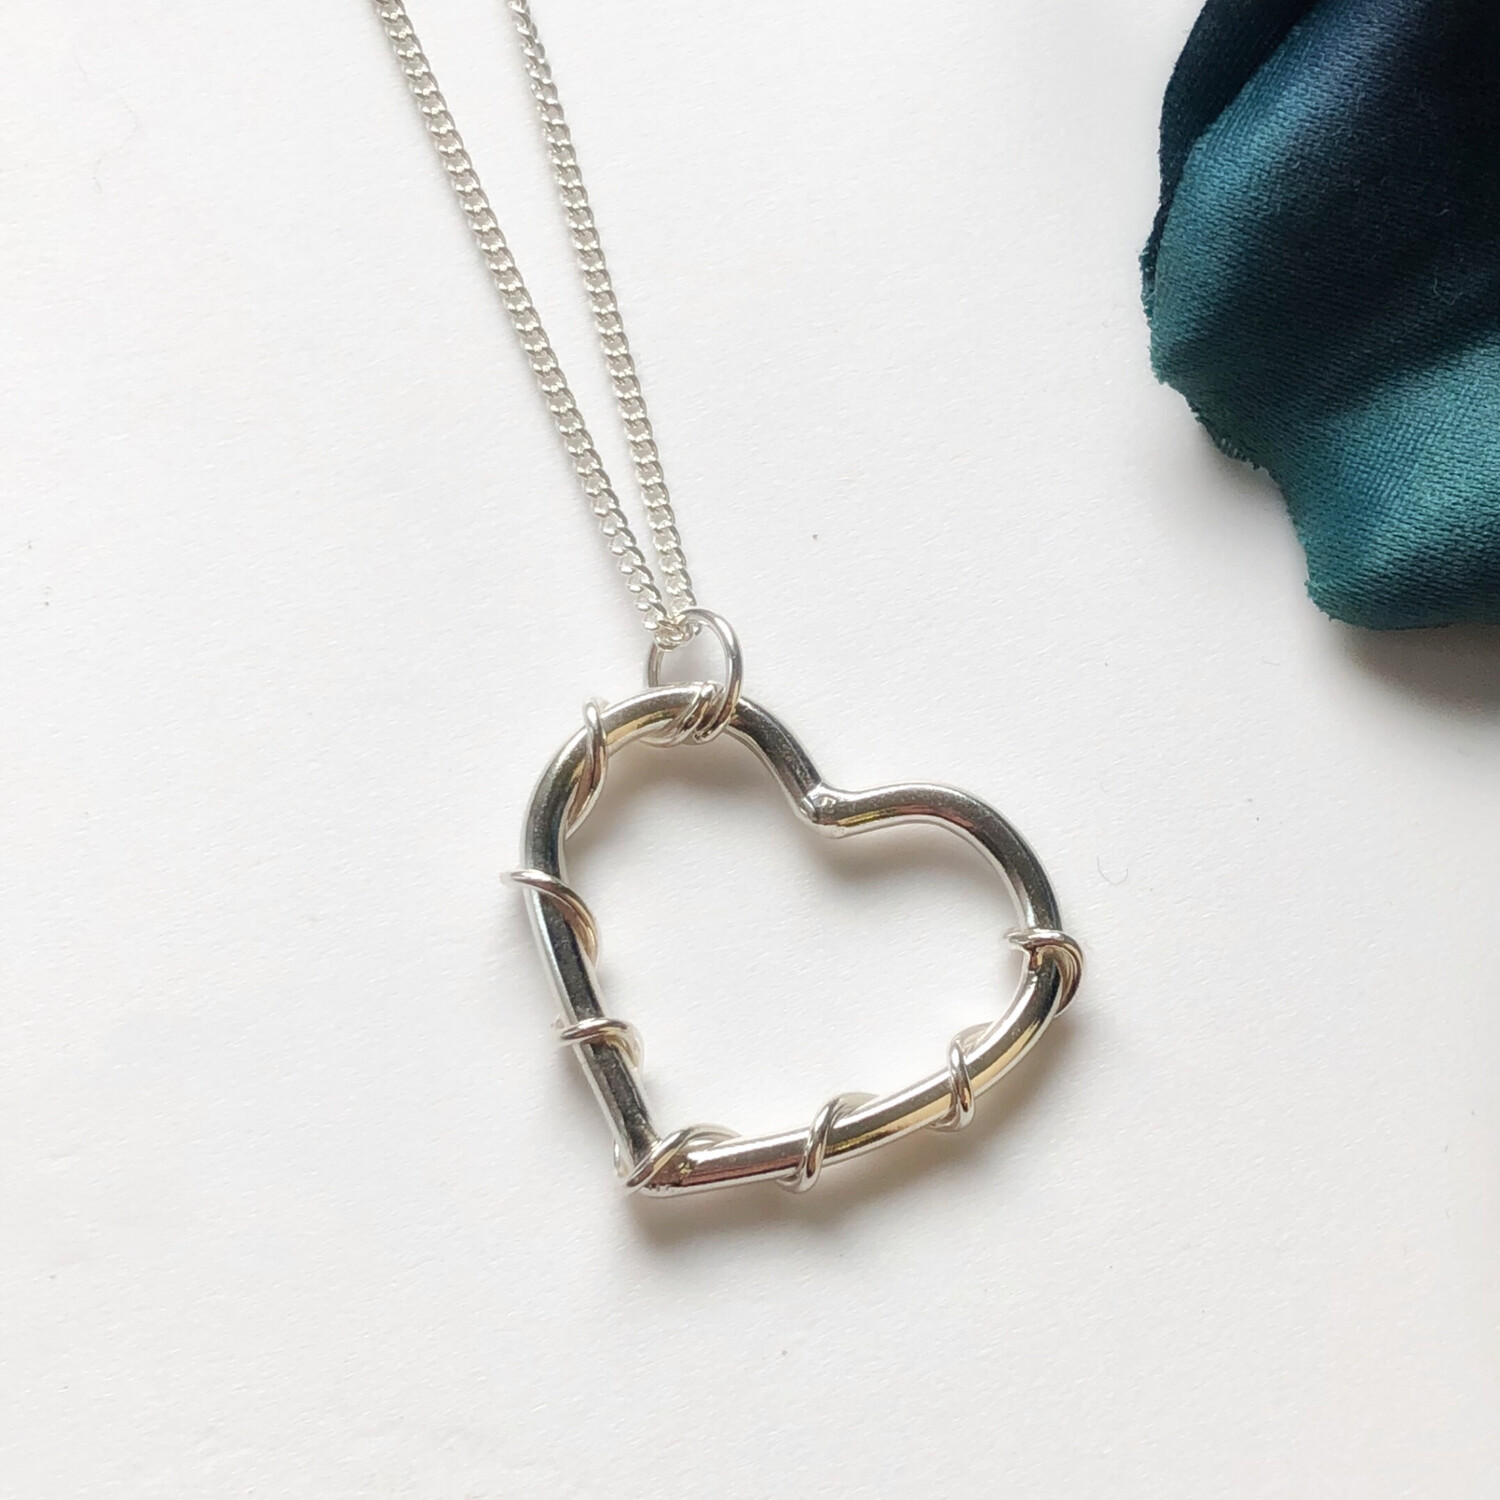 Entwined Love Heart Pendant